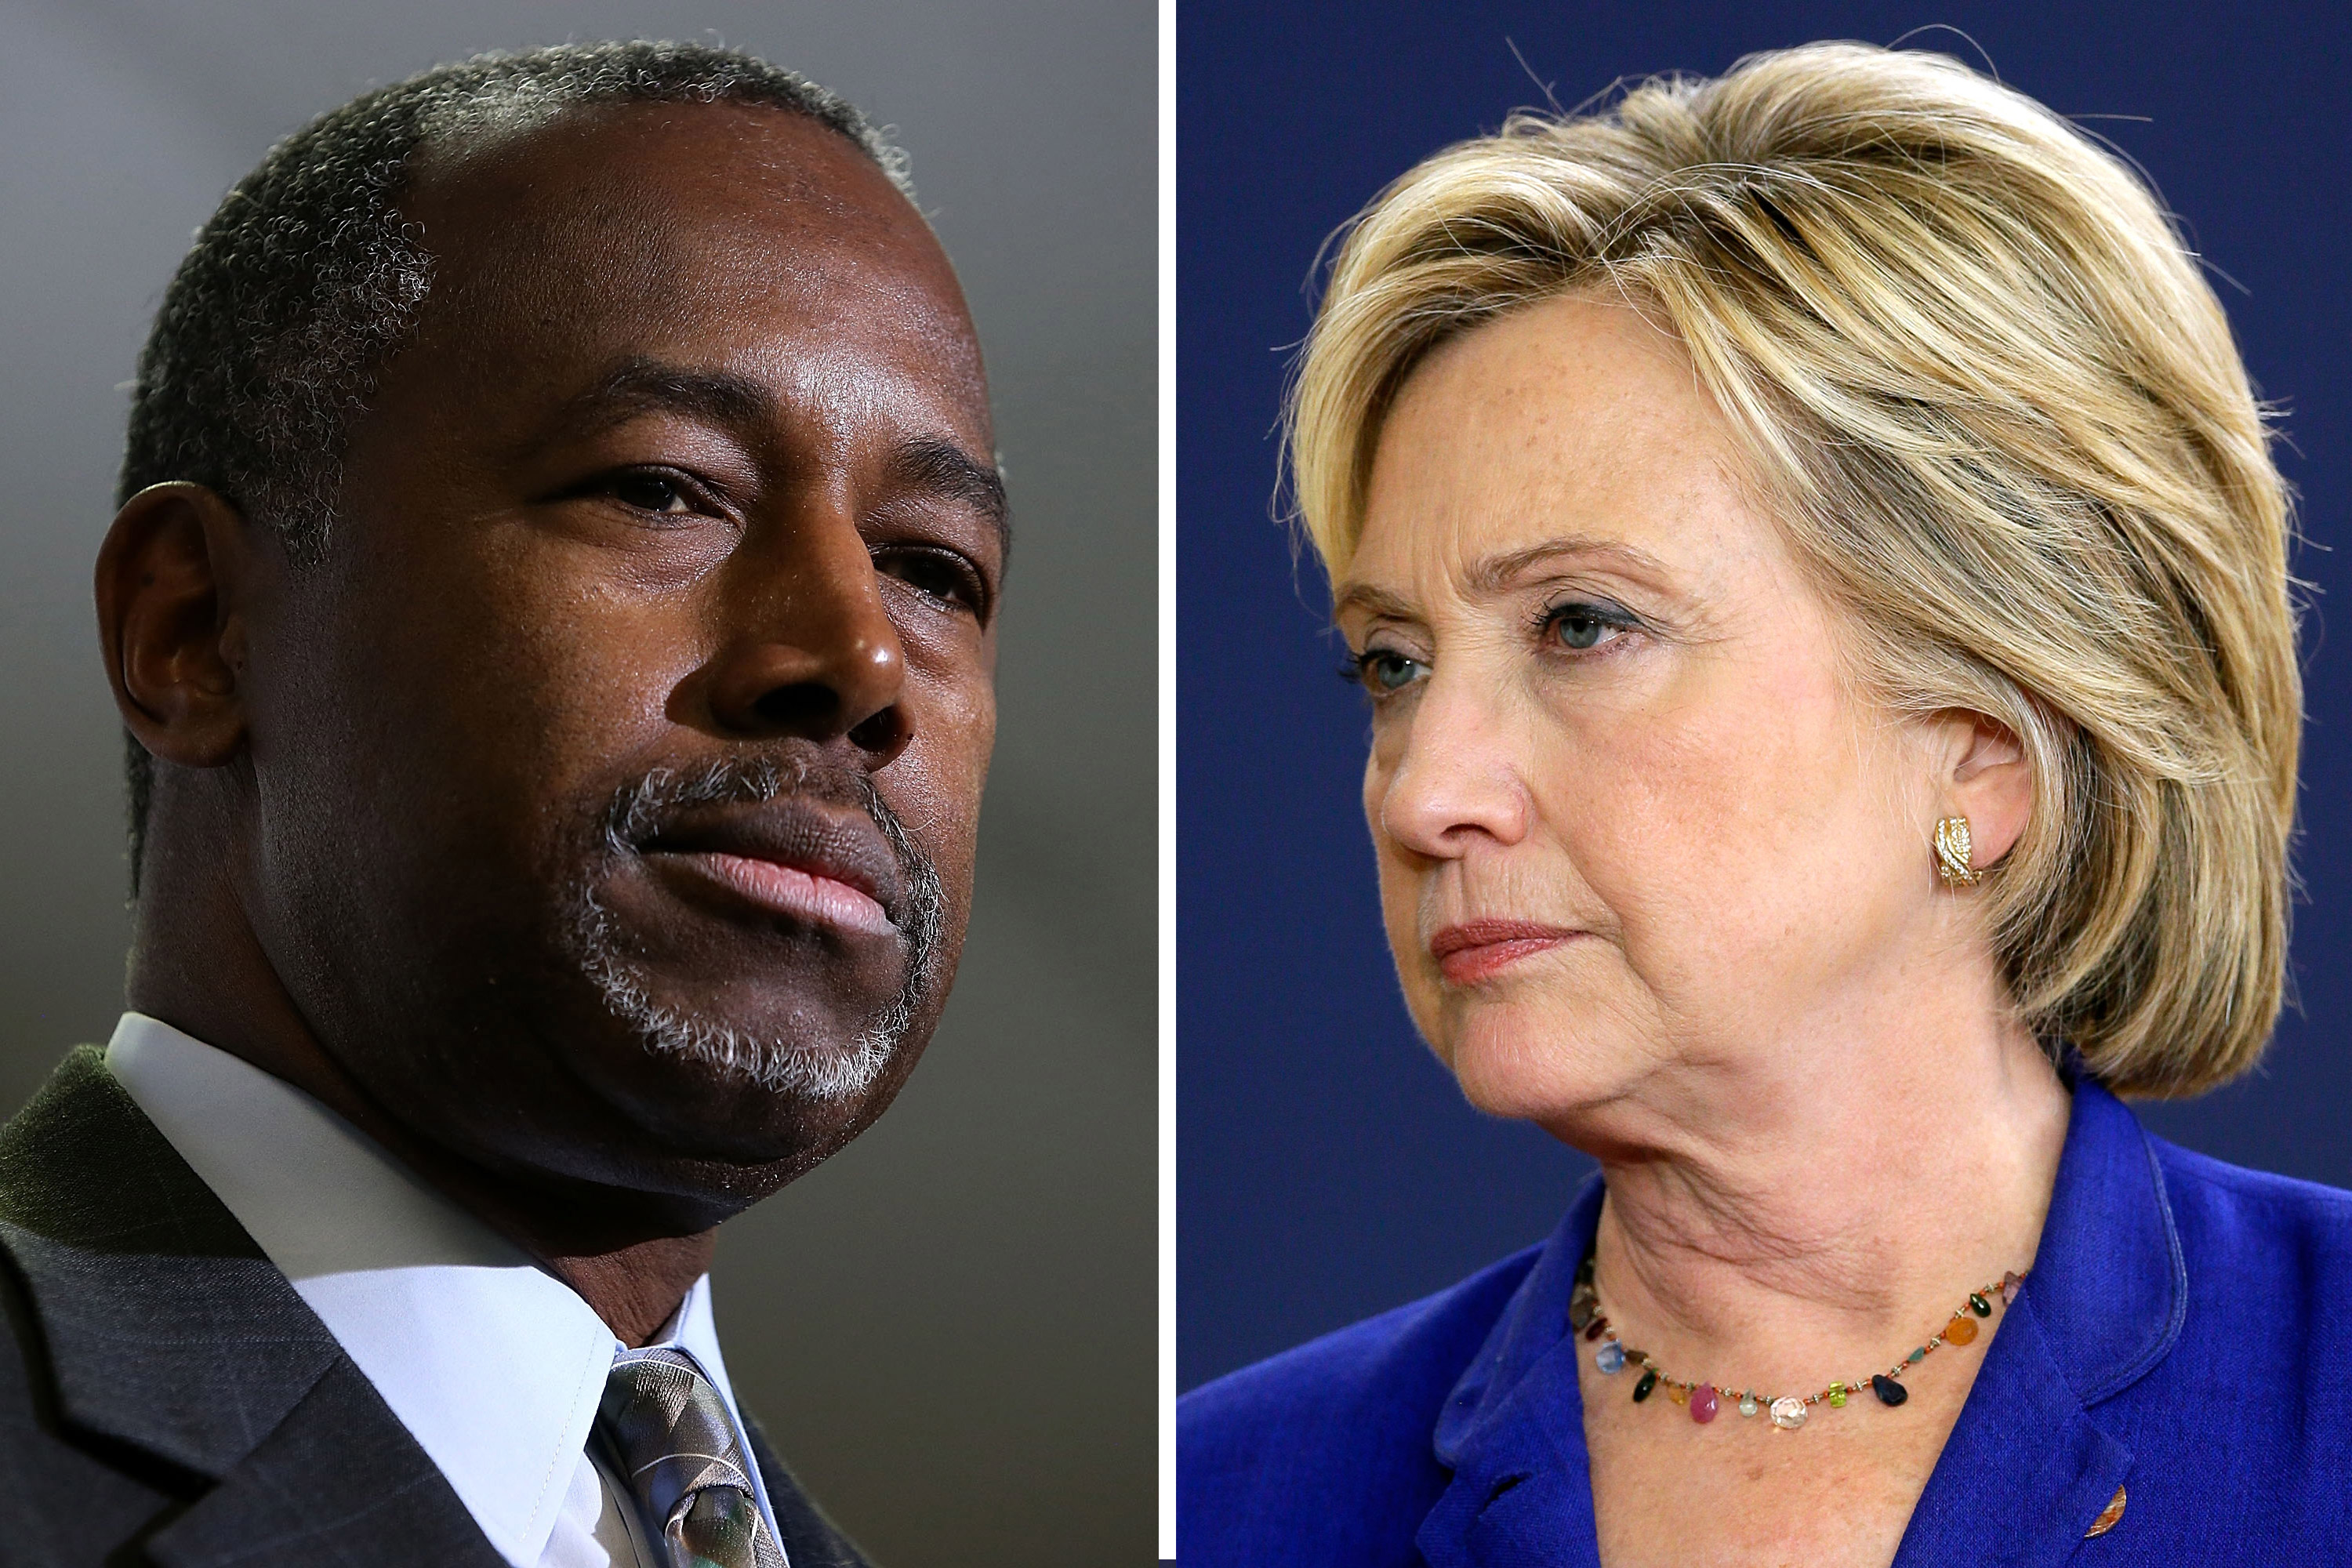 Left: Ben Carson speaks at Colorado Christian University in Lakewood on Oct. 29, 2015; Right: Hillary Rodham Clinton speaks in Des Moines, Iowa, on Sept. 22, 2015.